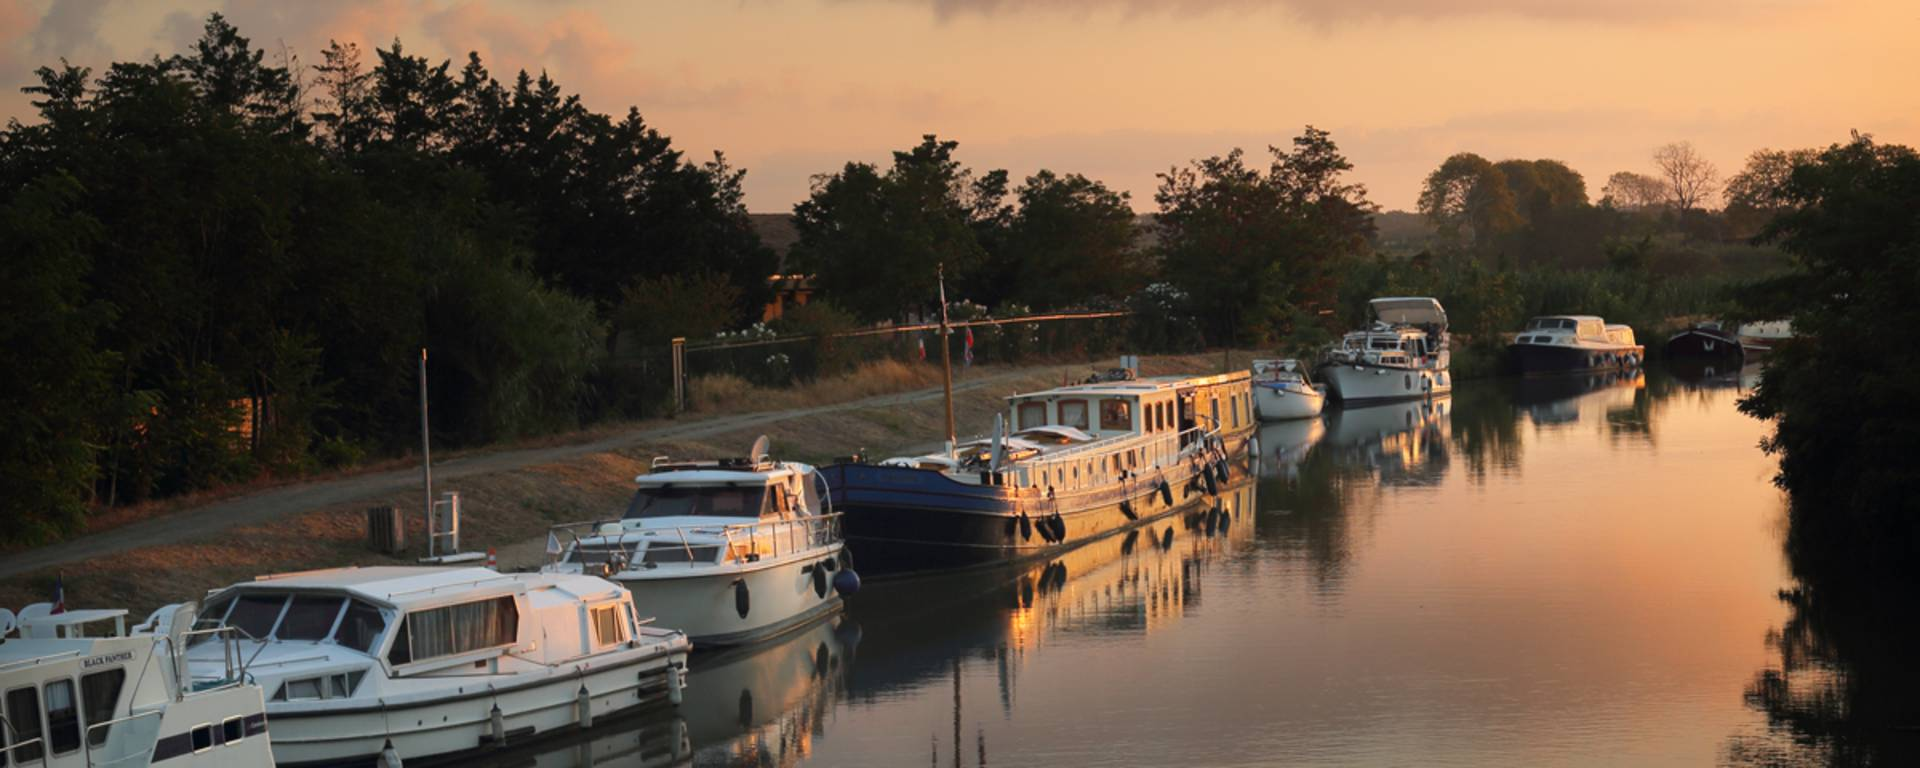 Summer evening on the Canal du Midi ©G. Souche